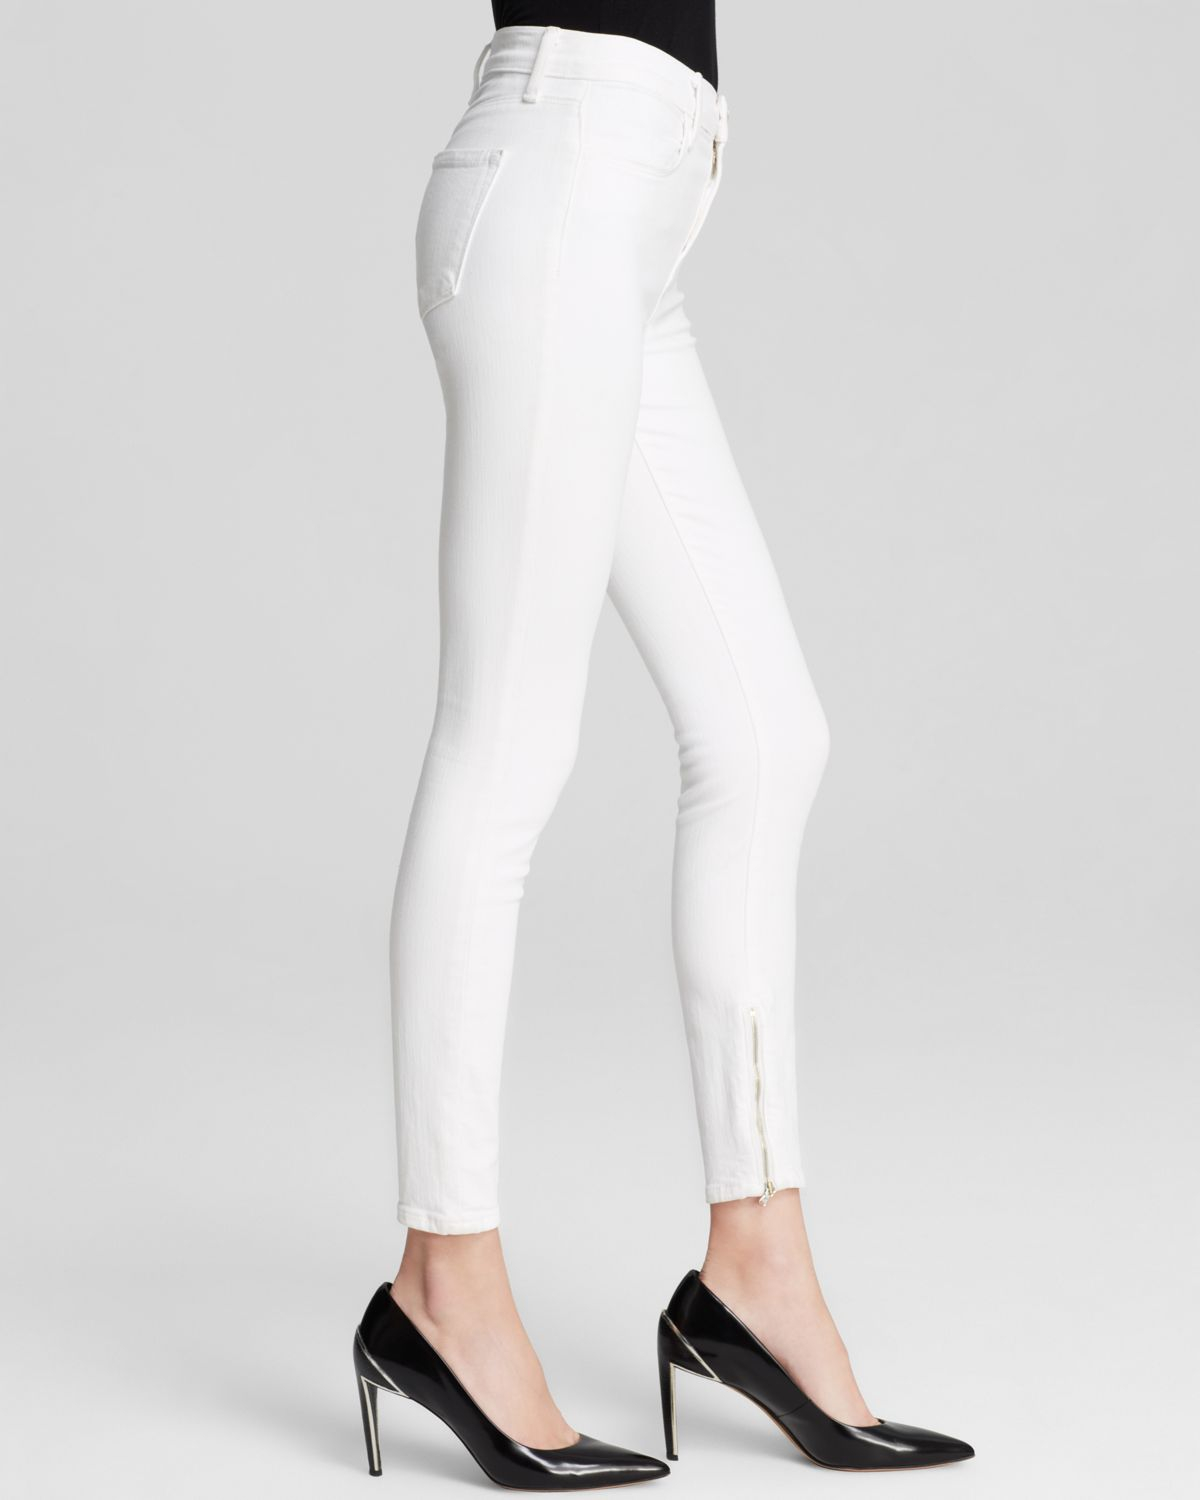 J brand Jeans - High Rise Hanna Zip Skinny In Blanc in White | Lyst